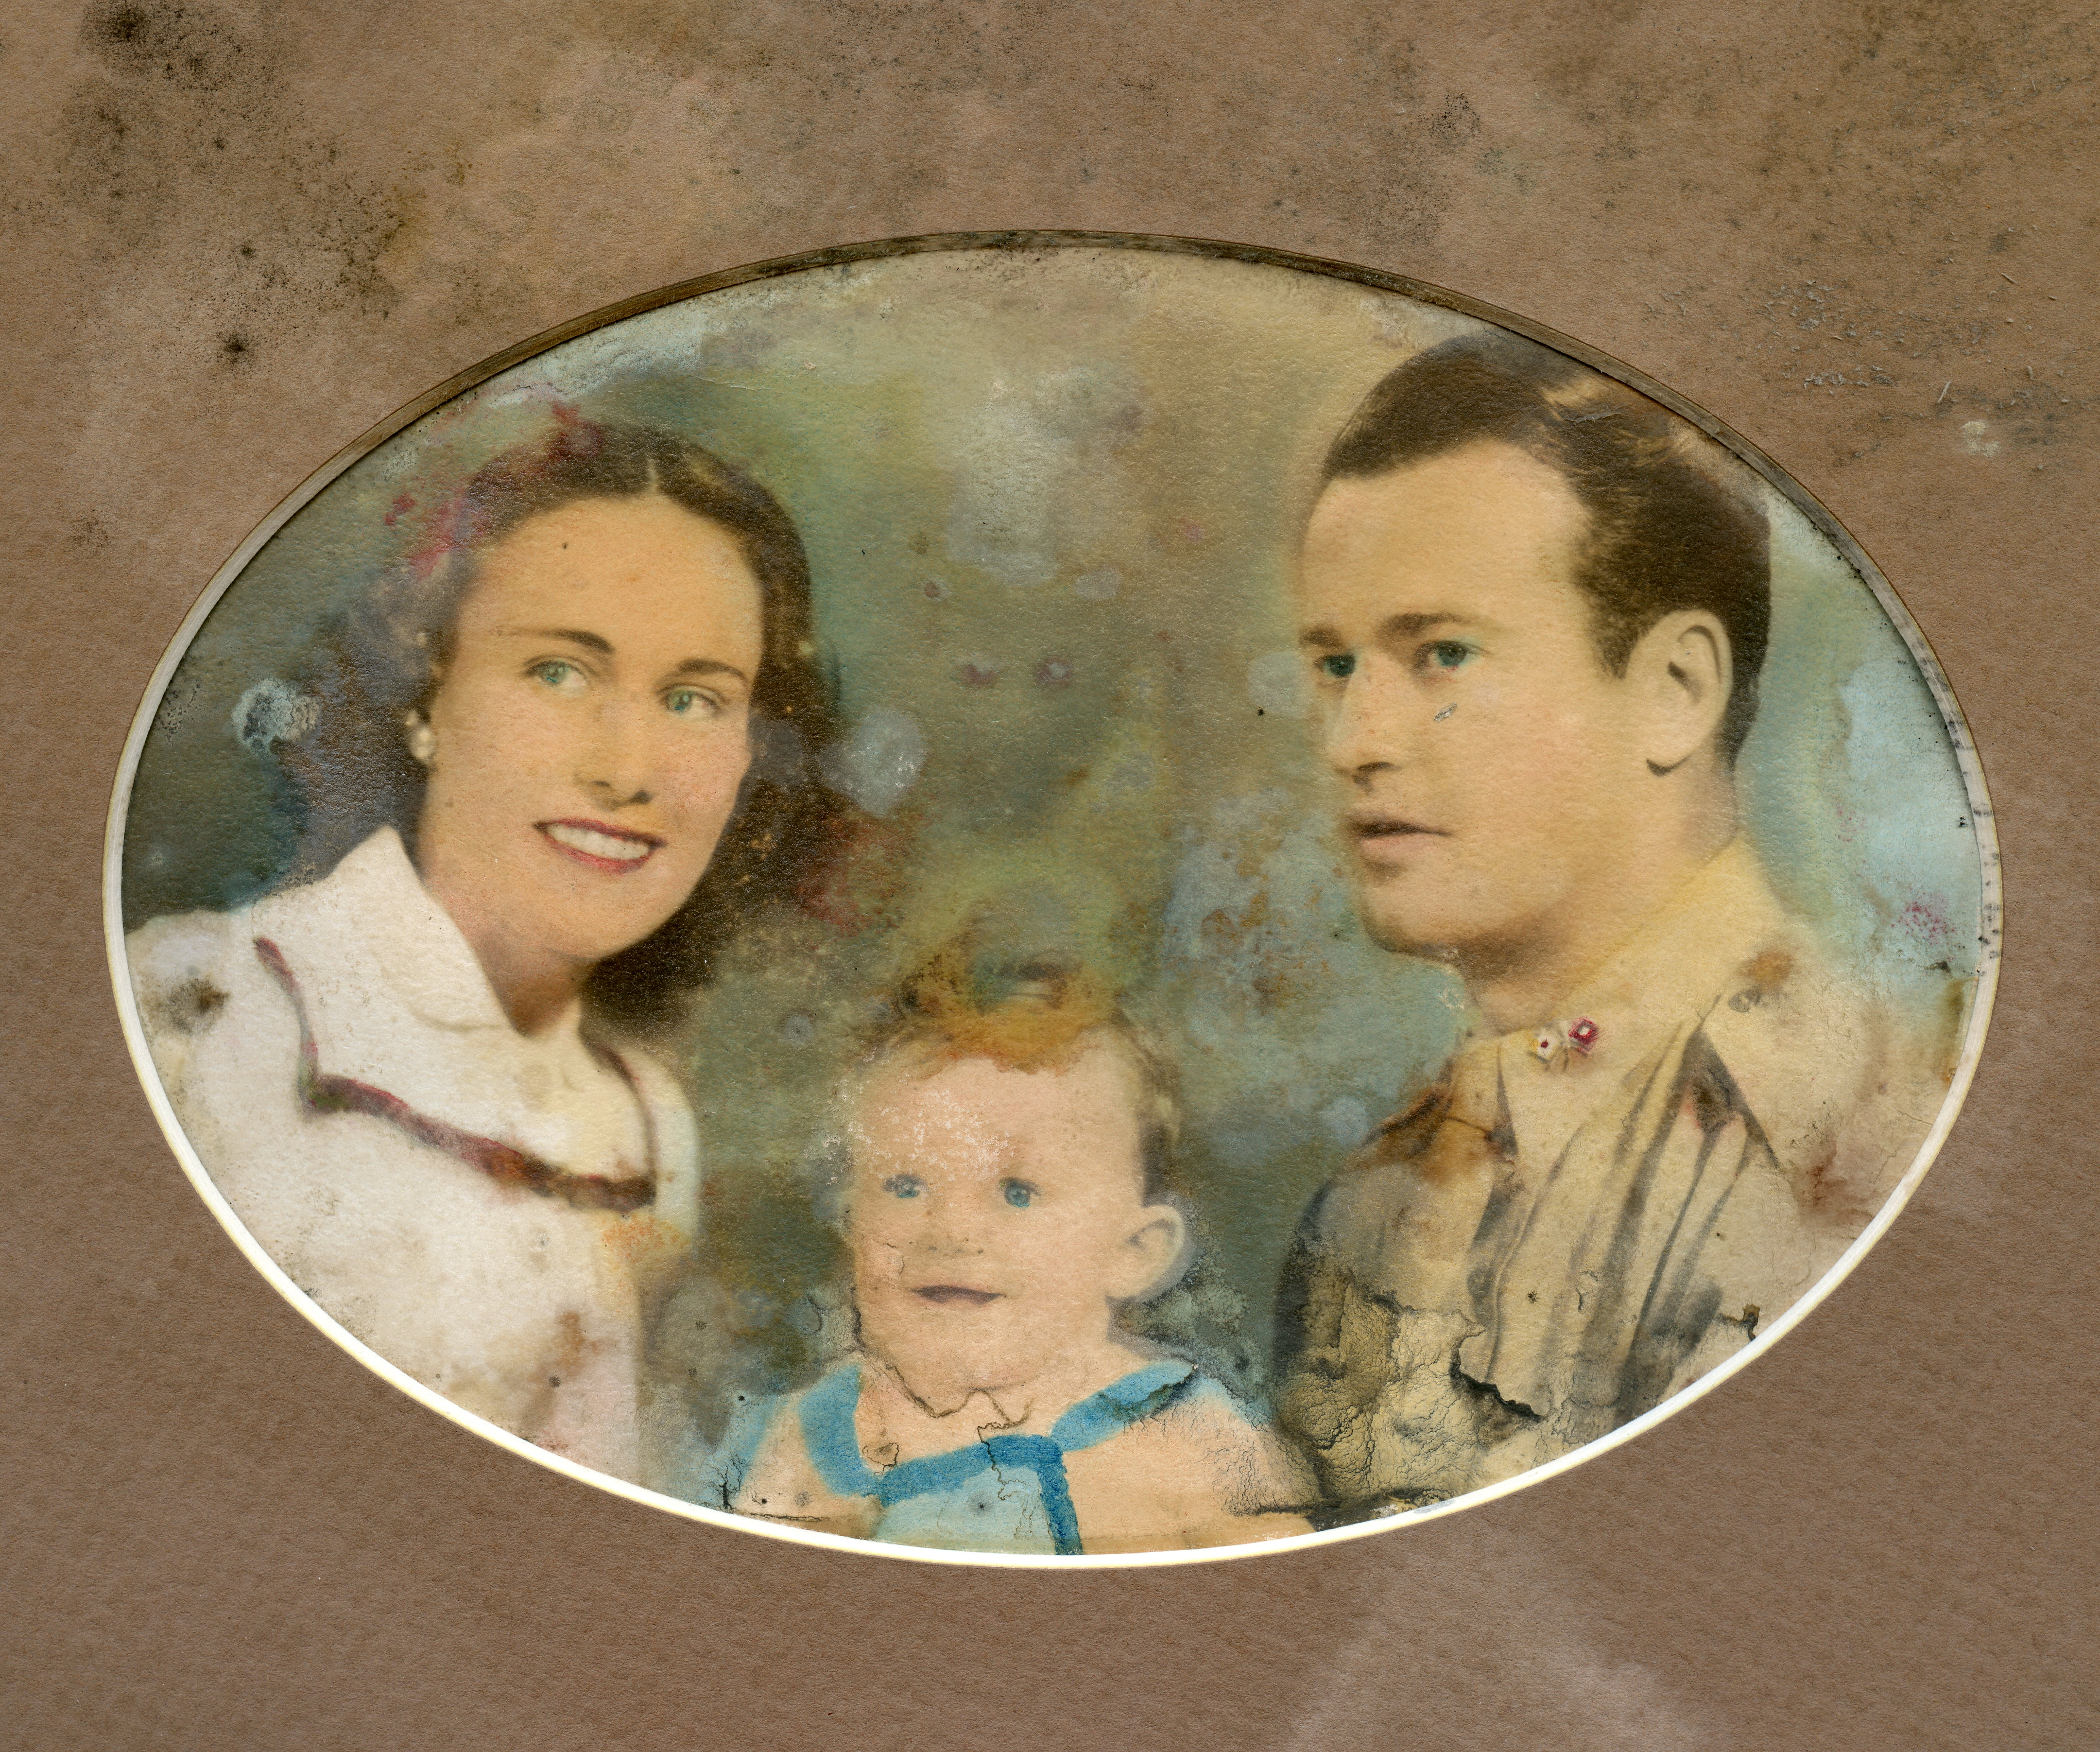 Film Hail The Conquering Hero Wartime Family Portrait Low Res